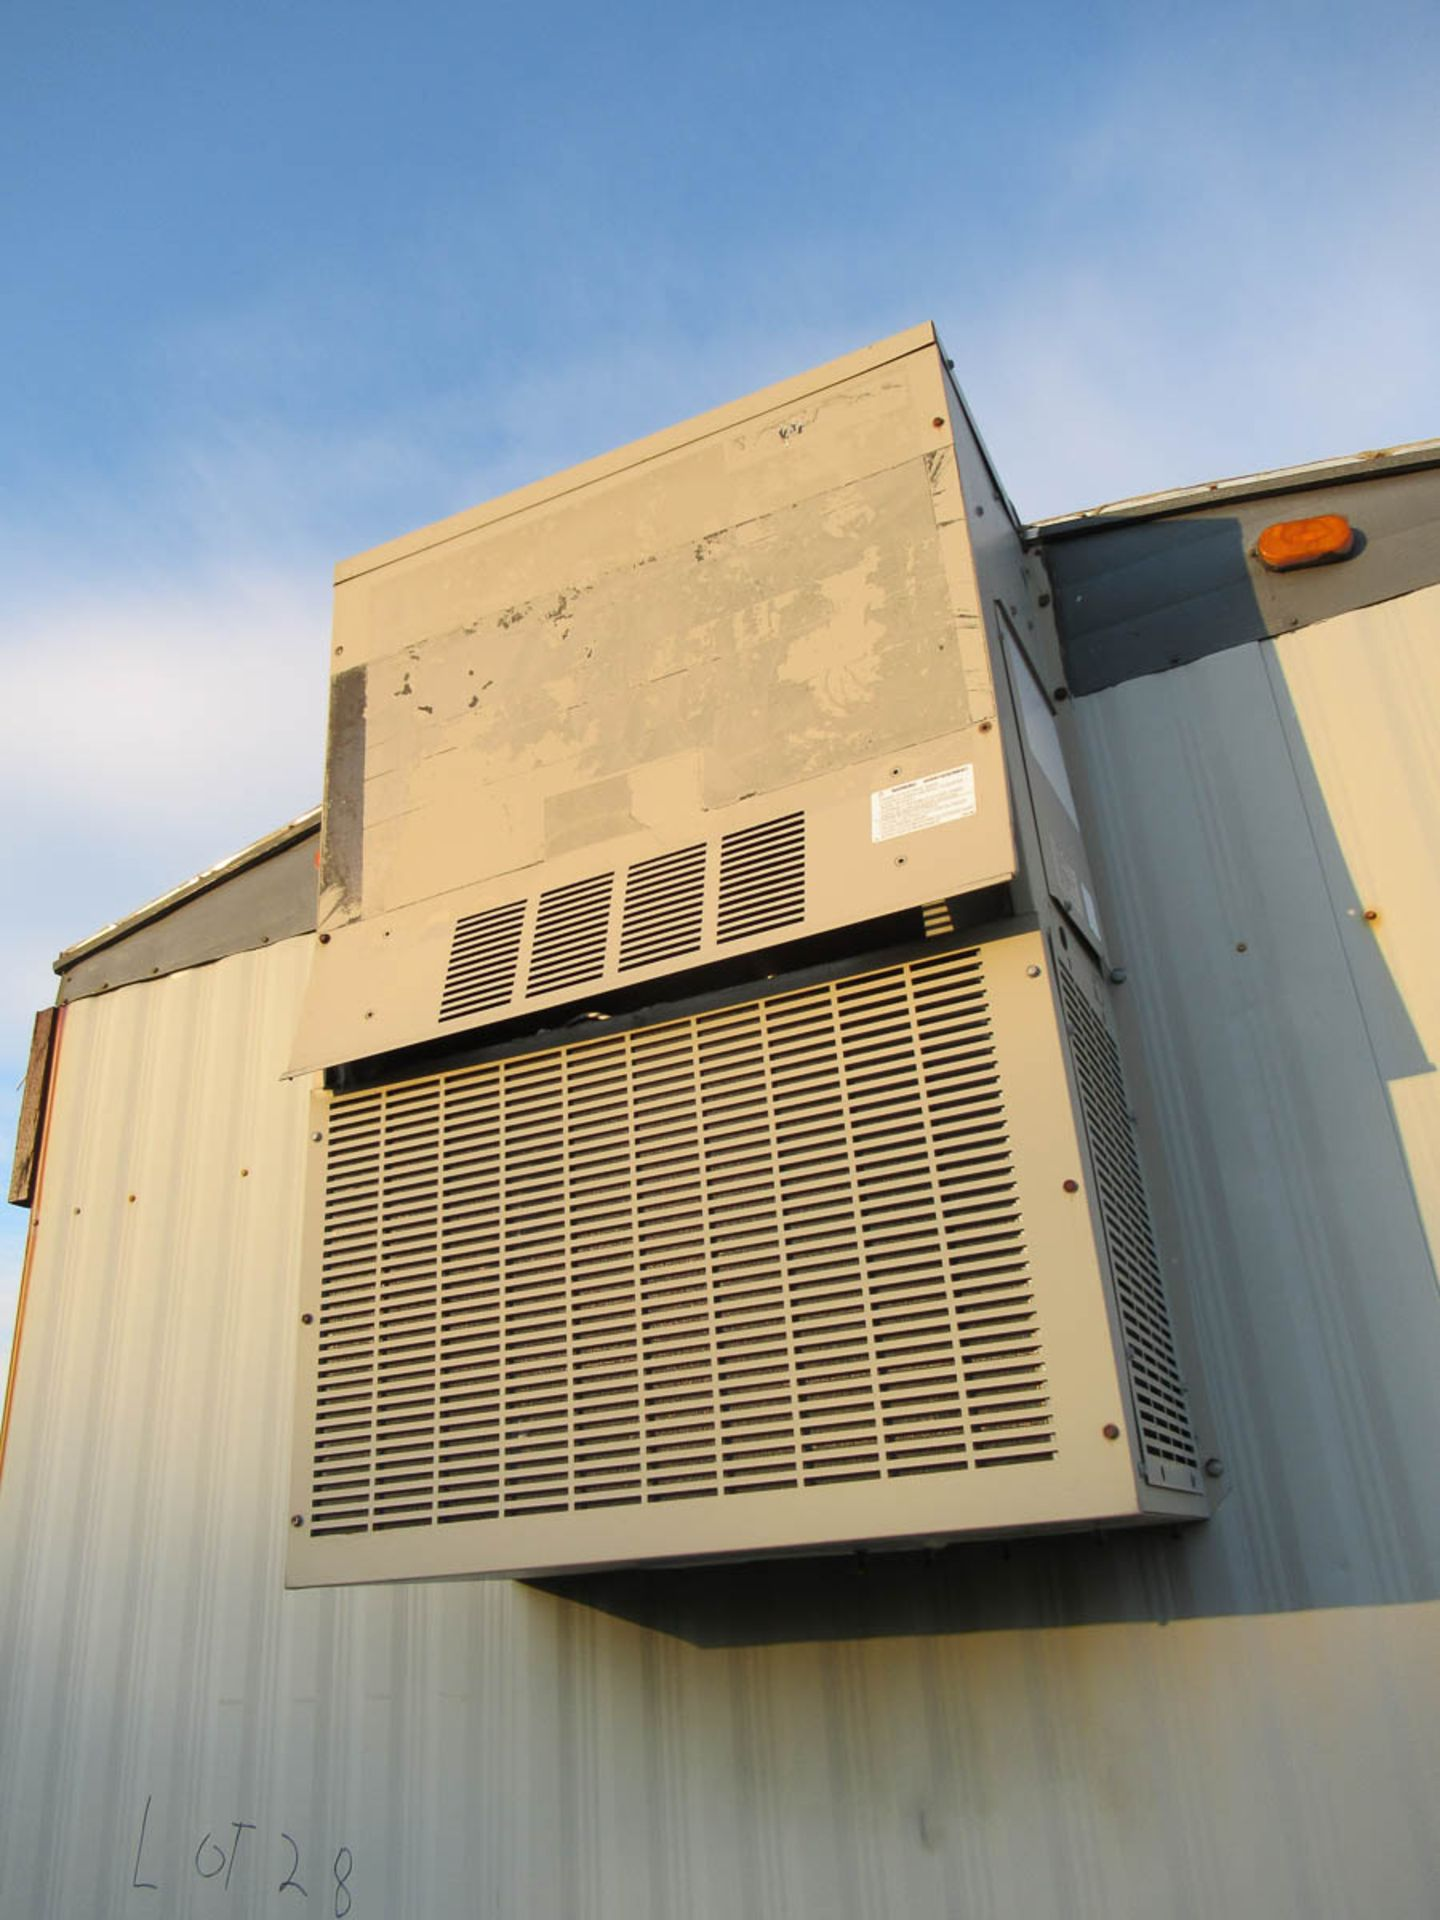 APPROXIMATELY 28' OFFICE TRAILER [LOCATED @ MARINE PARKWAY BRIDGE - QUEENS SIDE] - Image 3 of 9